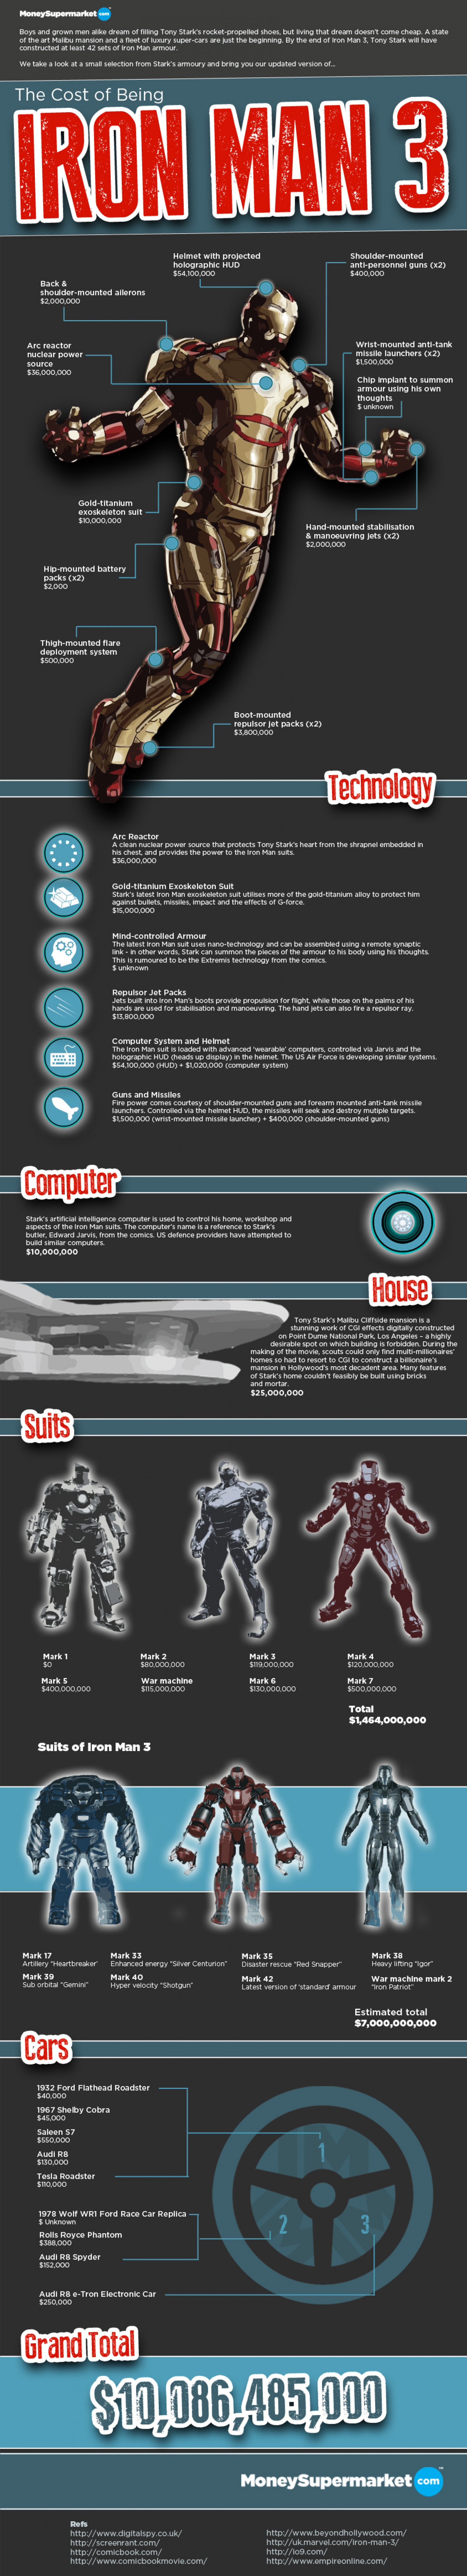 The Cost of Being Iron Man 3 Infographic